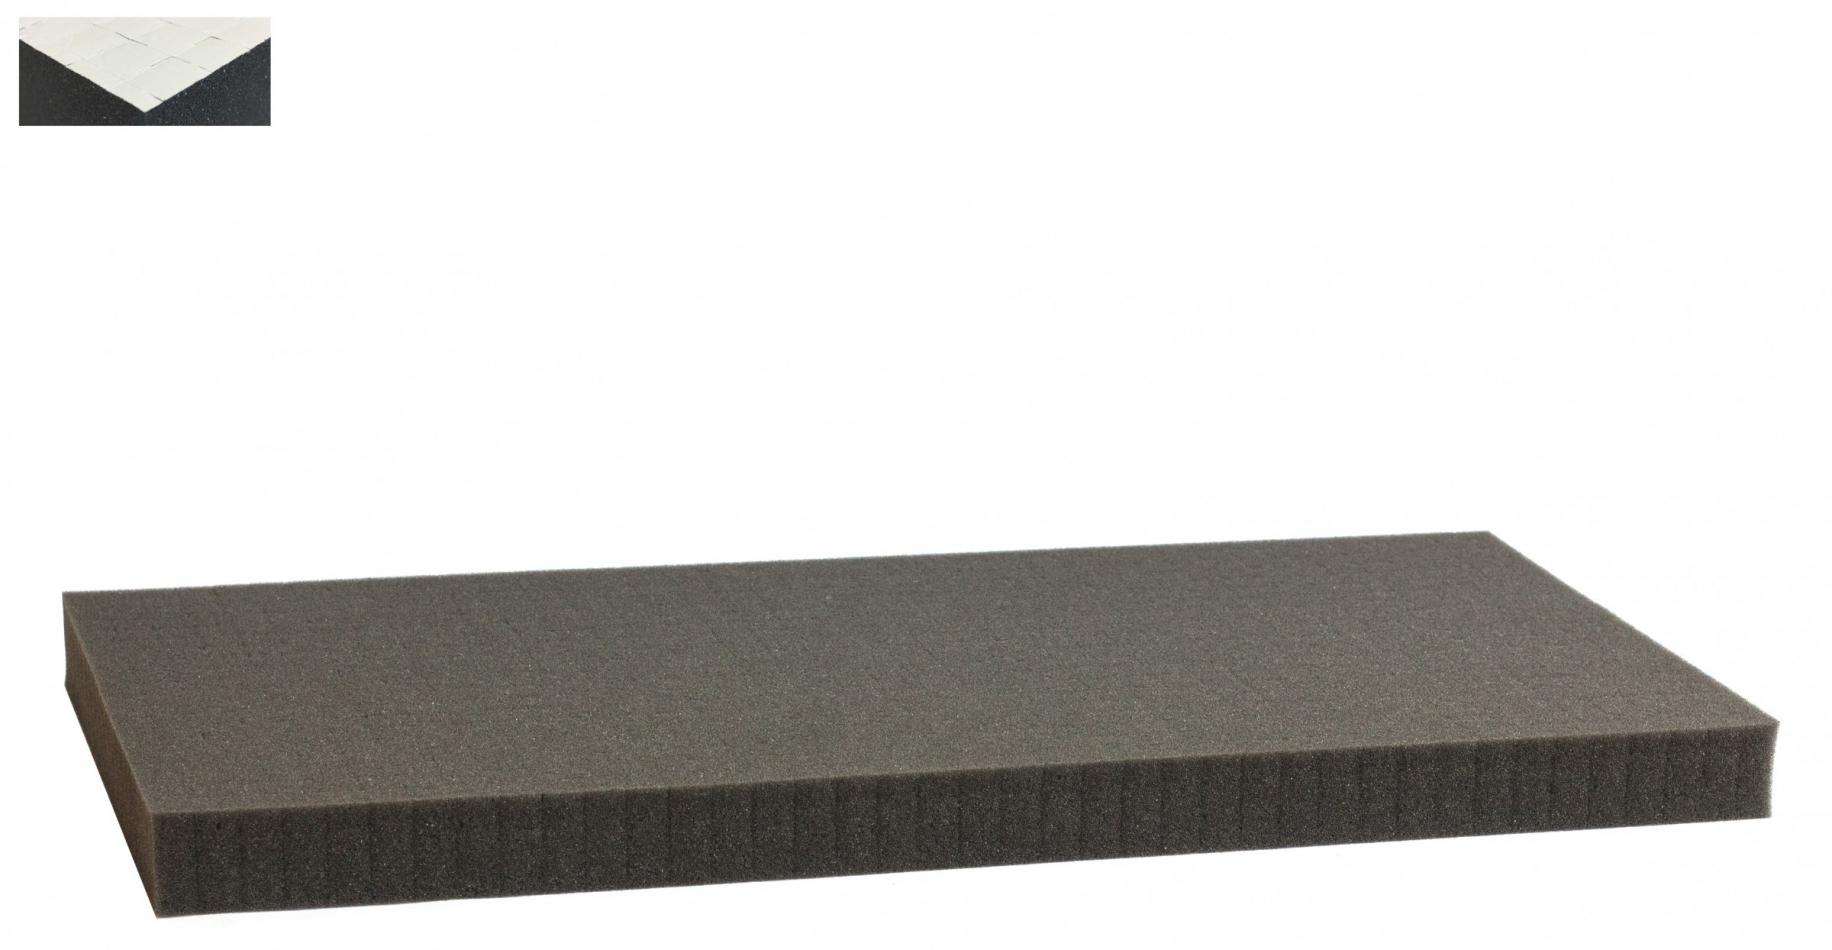 1000 mm x 500 mm x 30 mm self adhesive - Raster 15 mm - Pick and Pluck / Pre-Cubed foam tray